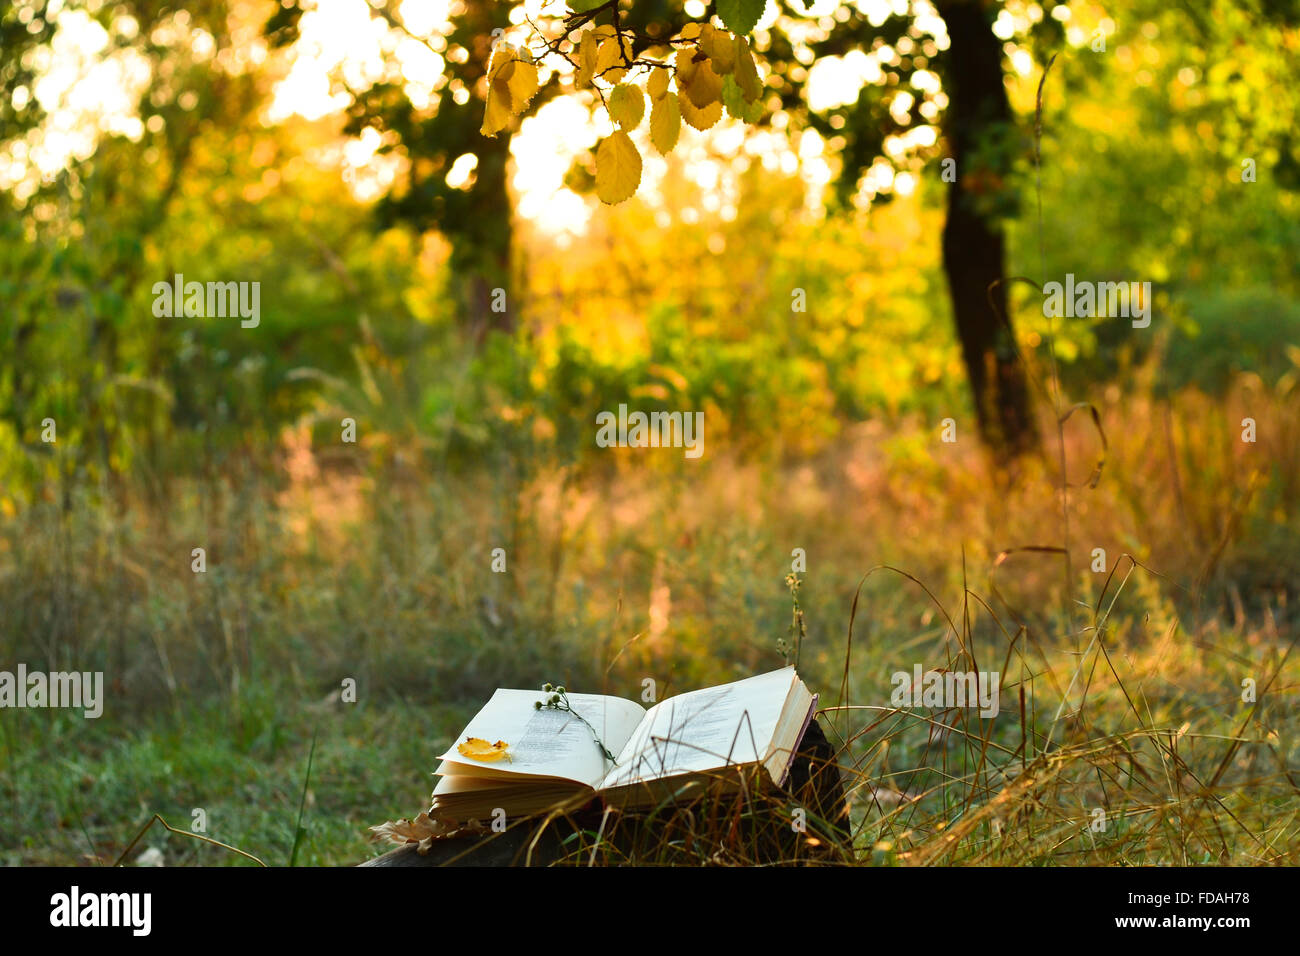 Book of poetry outdoors with fallen leaf on it, under a tree in front of blurred sunset - Stock Image